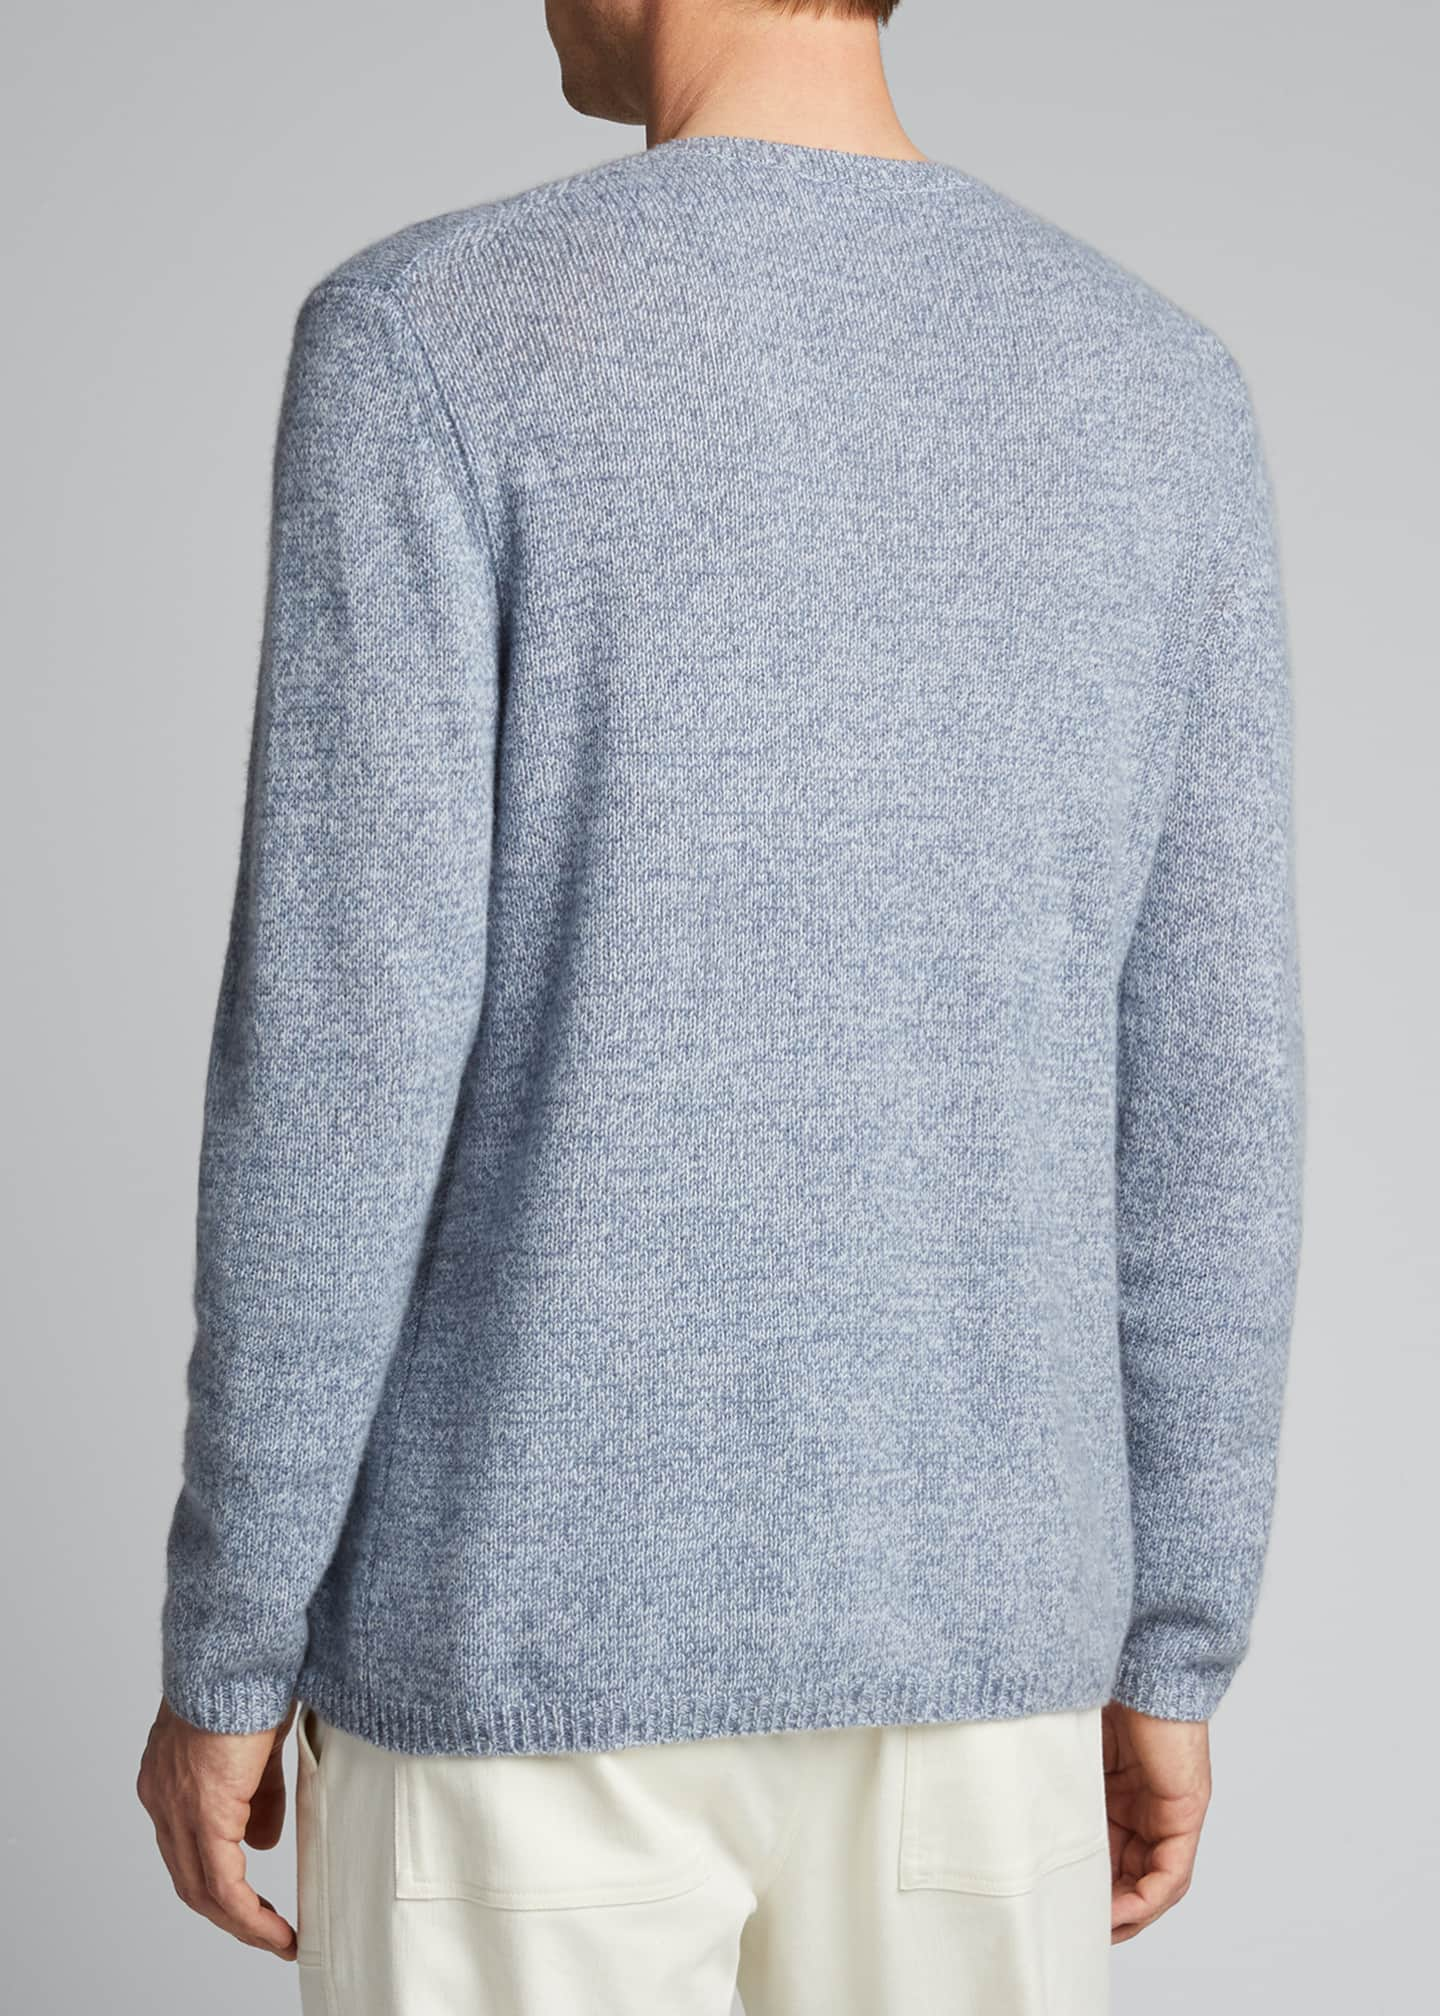 Image 2 of 5: Men's Solid Cashmere Crewneck Sweater